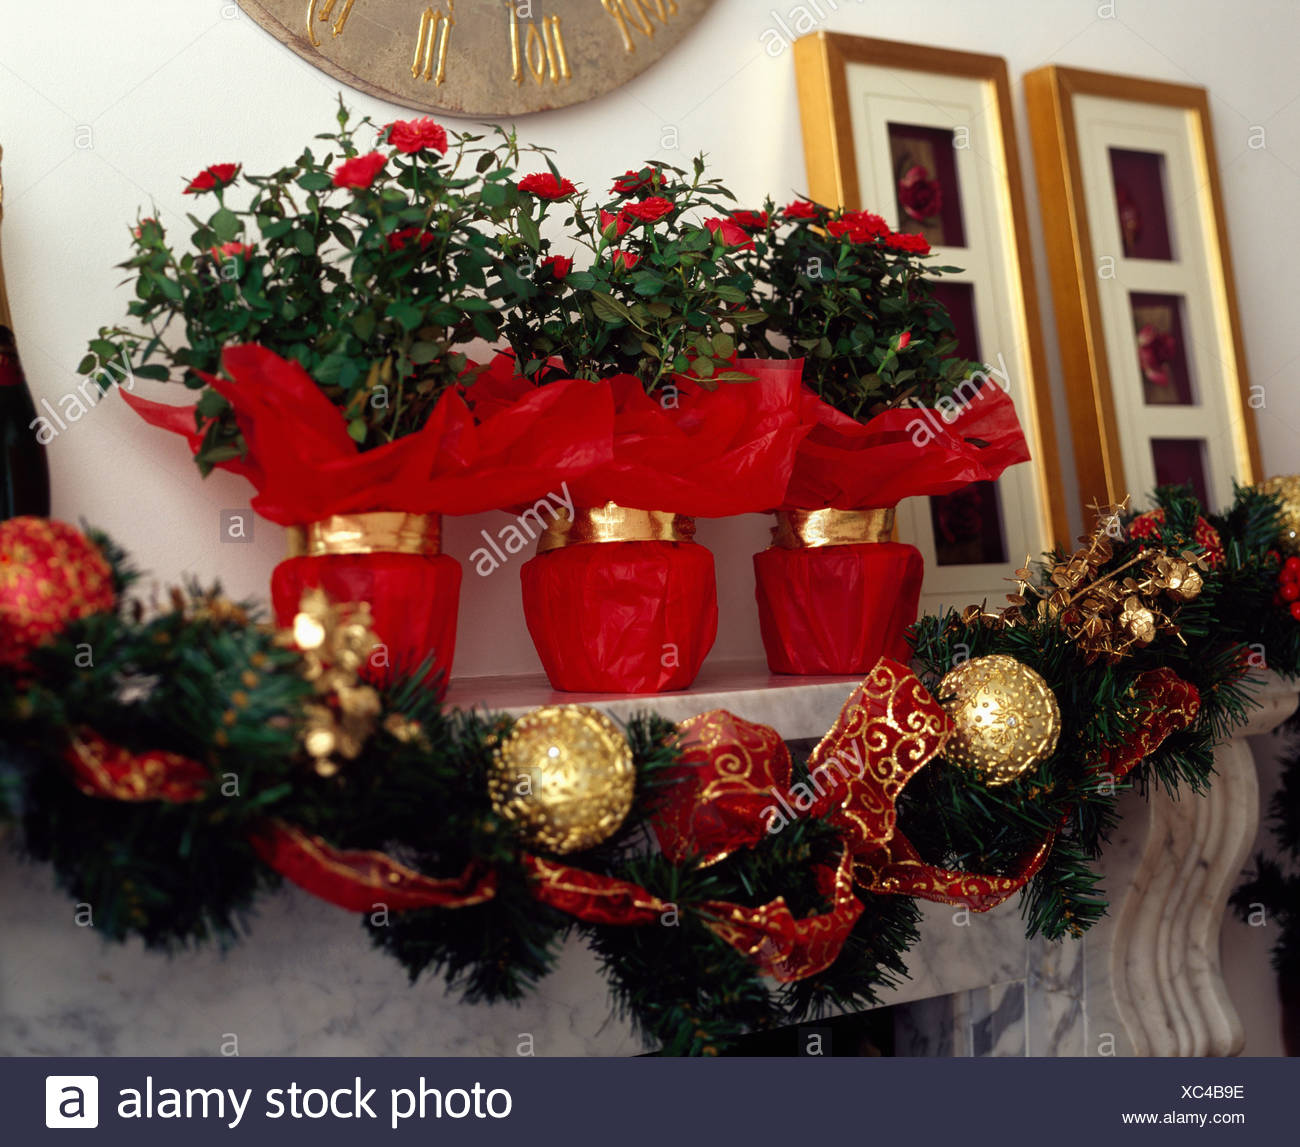 Red Rose Plants Wrapped In Red Paper Above Green Garland With Gold